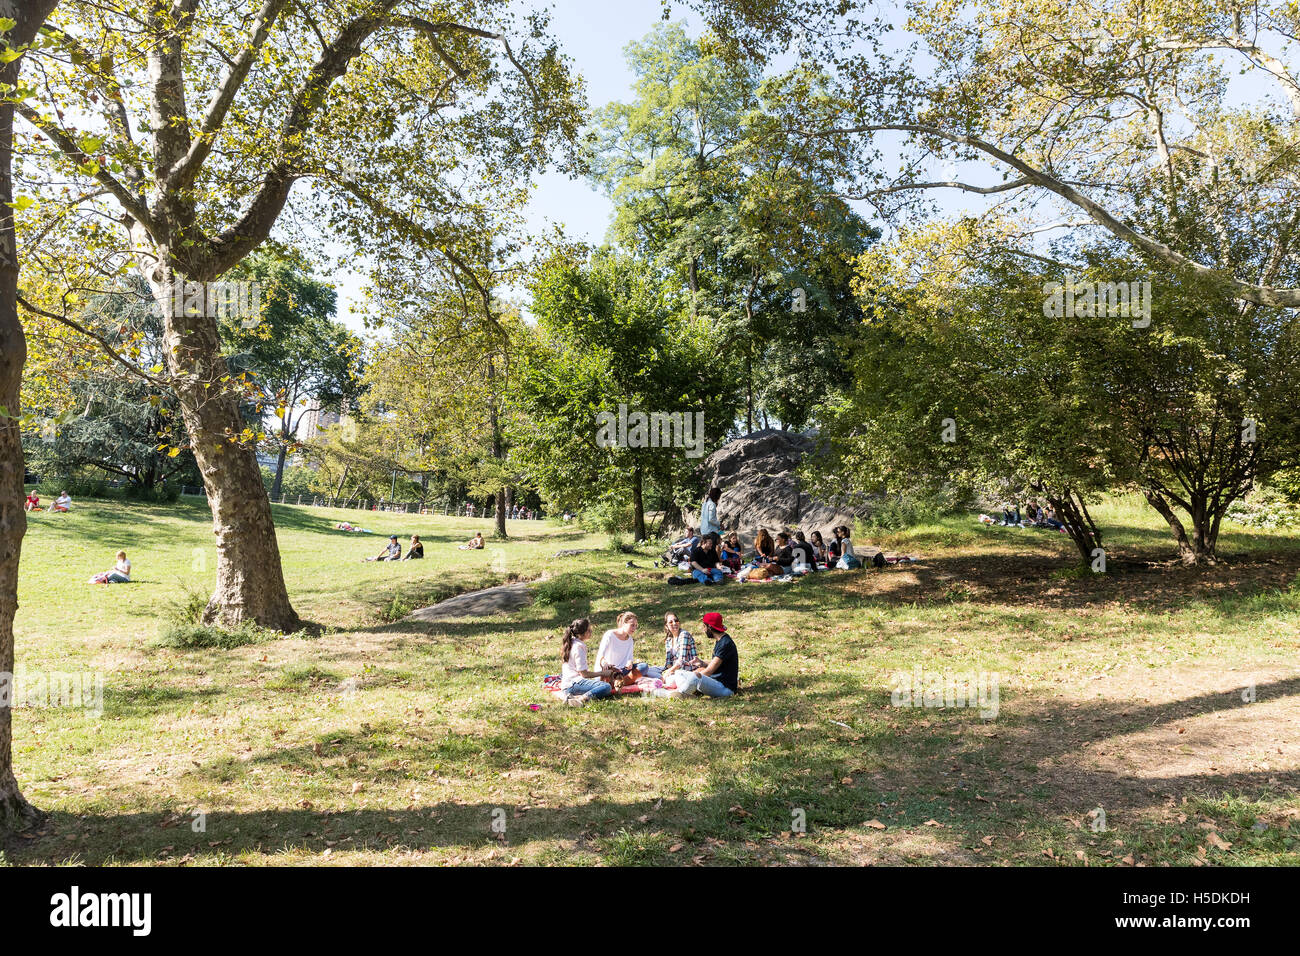 Young people having a picnic in Central Park New York City - Stock Image